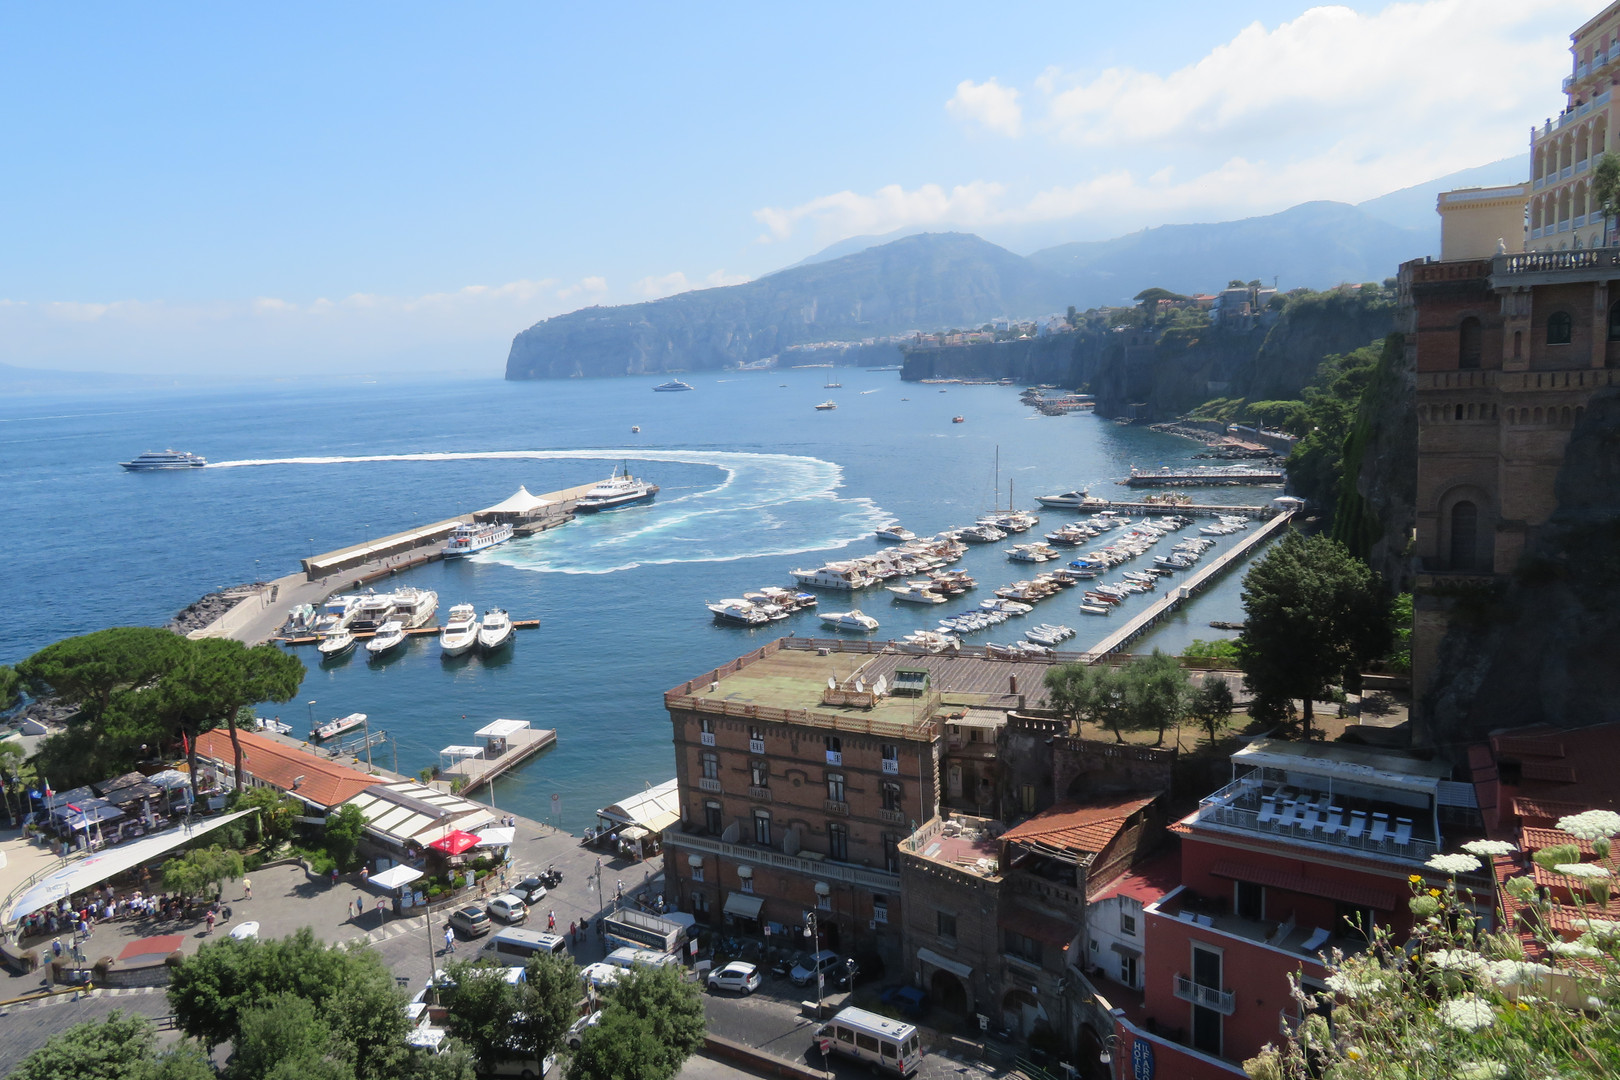 Sorrento best Italy 2018 IMG_4154.JPG